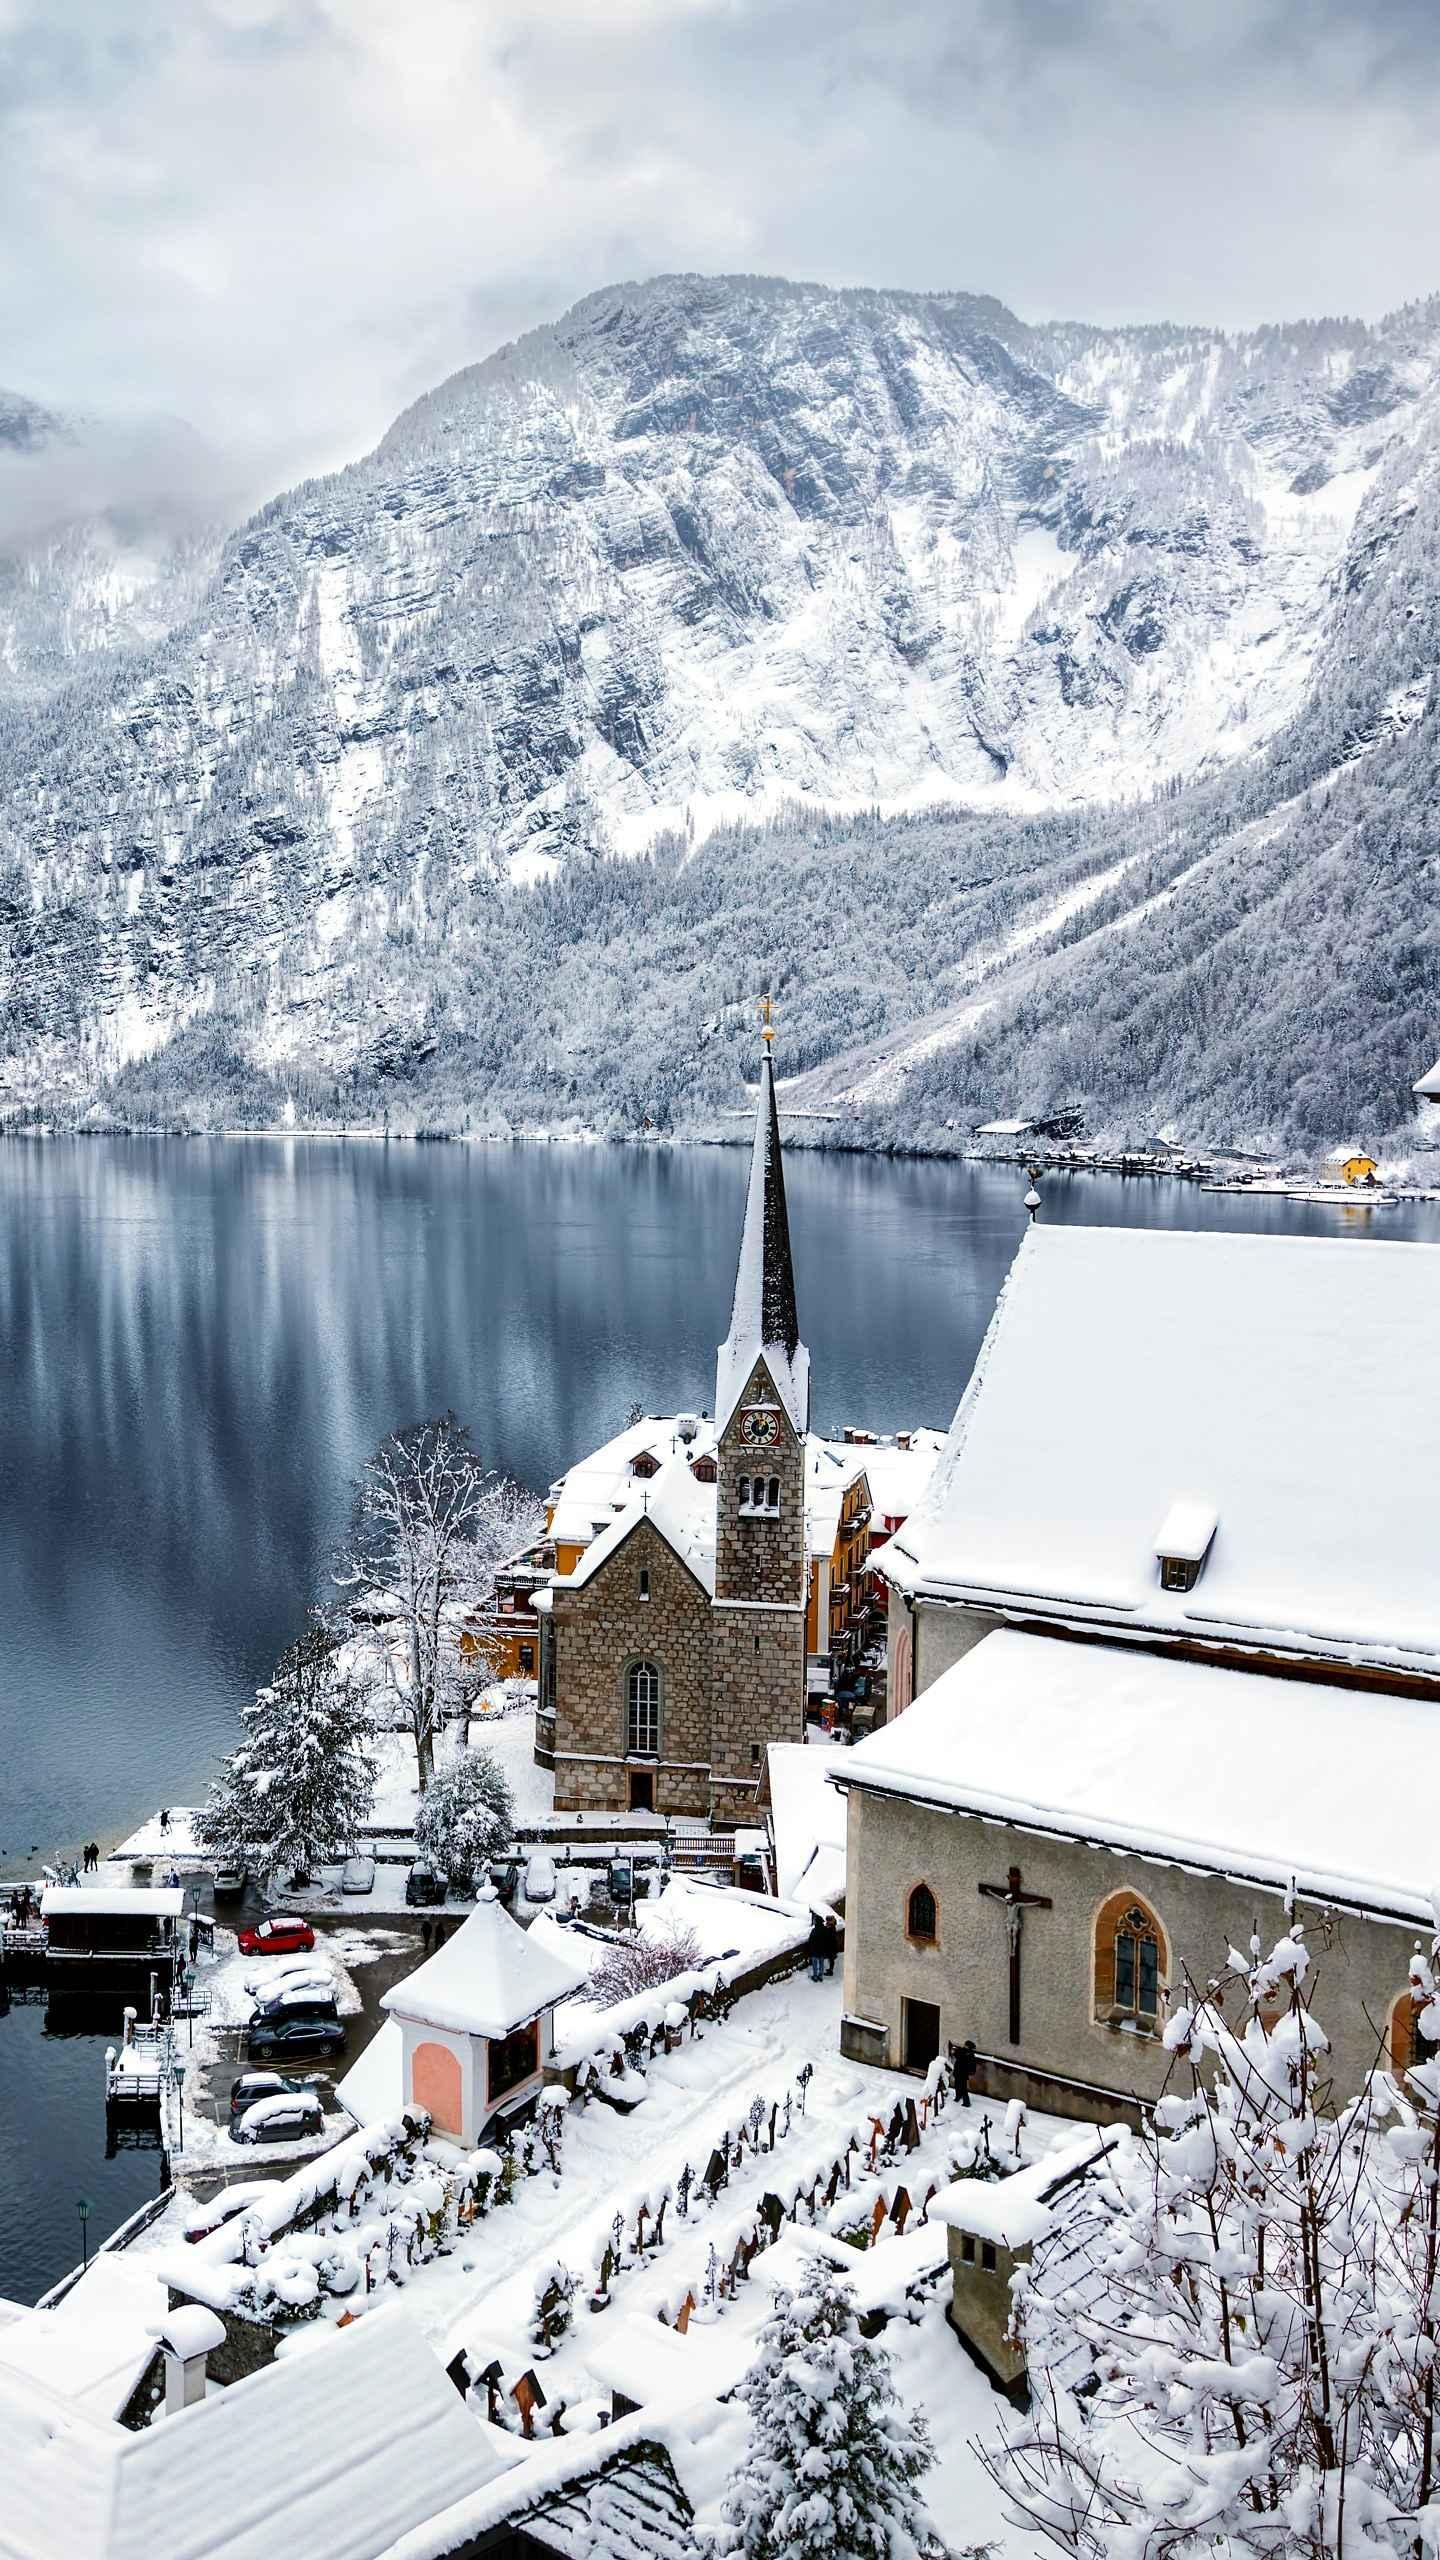 The most beautiful town in the winter world is covered in snow and the town of Hallstatt is old and elegant, just like a dream, it is unforgettable.